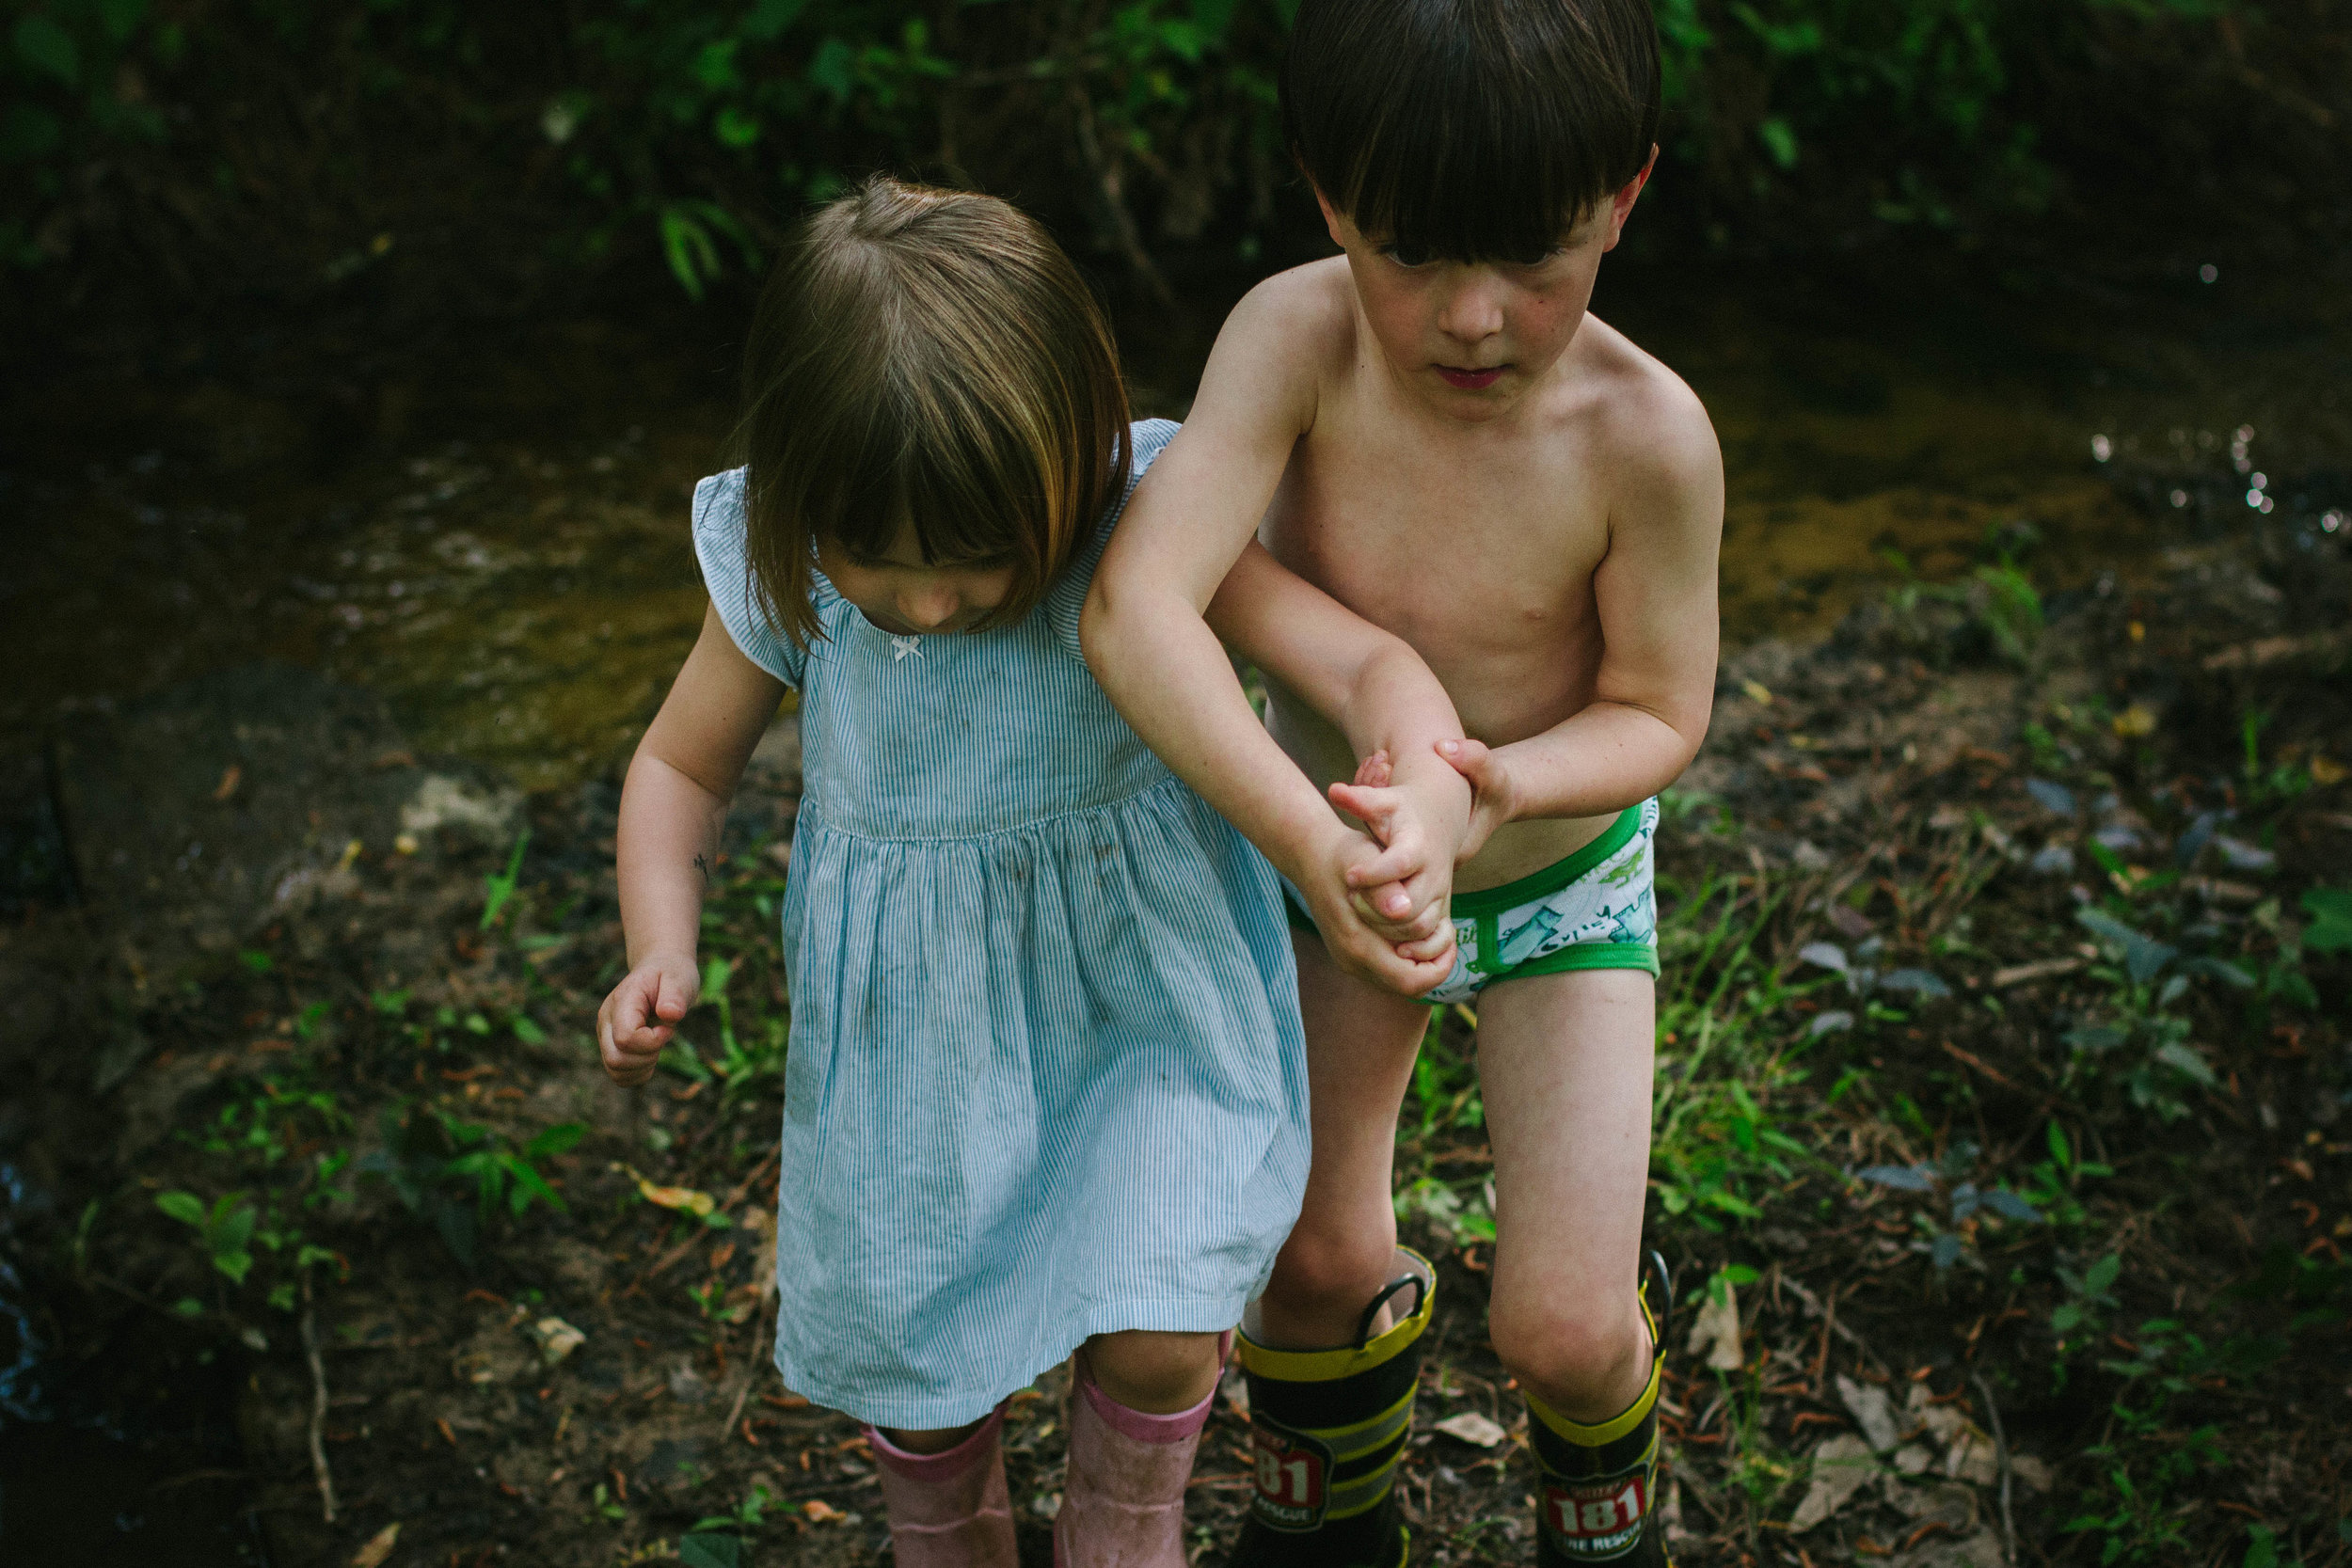 A small boy helping a small girl by holding her arm to cross a creek